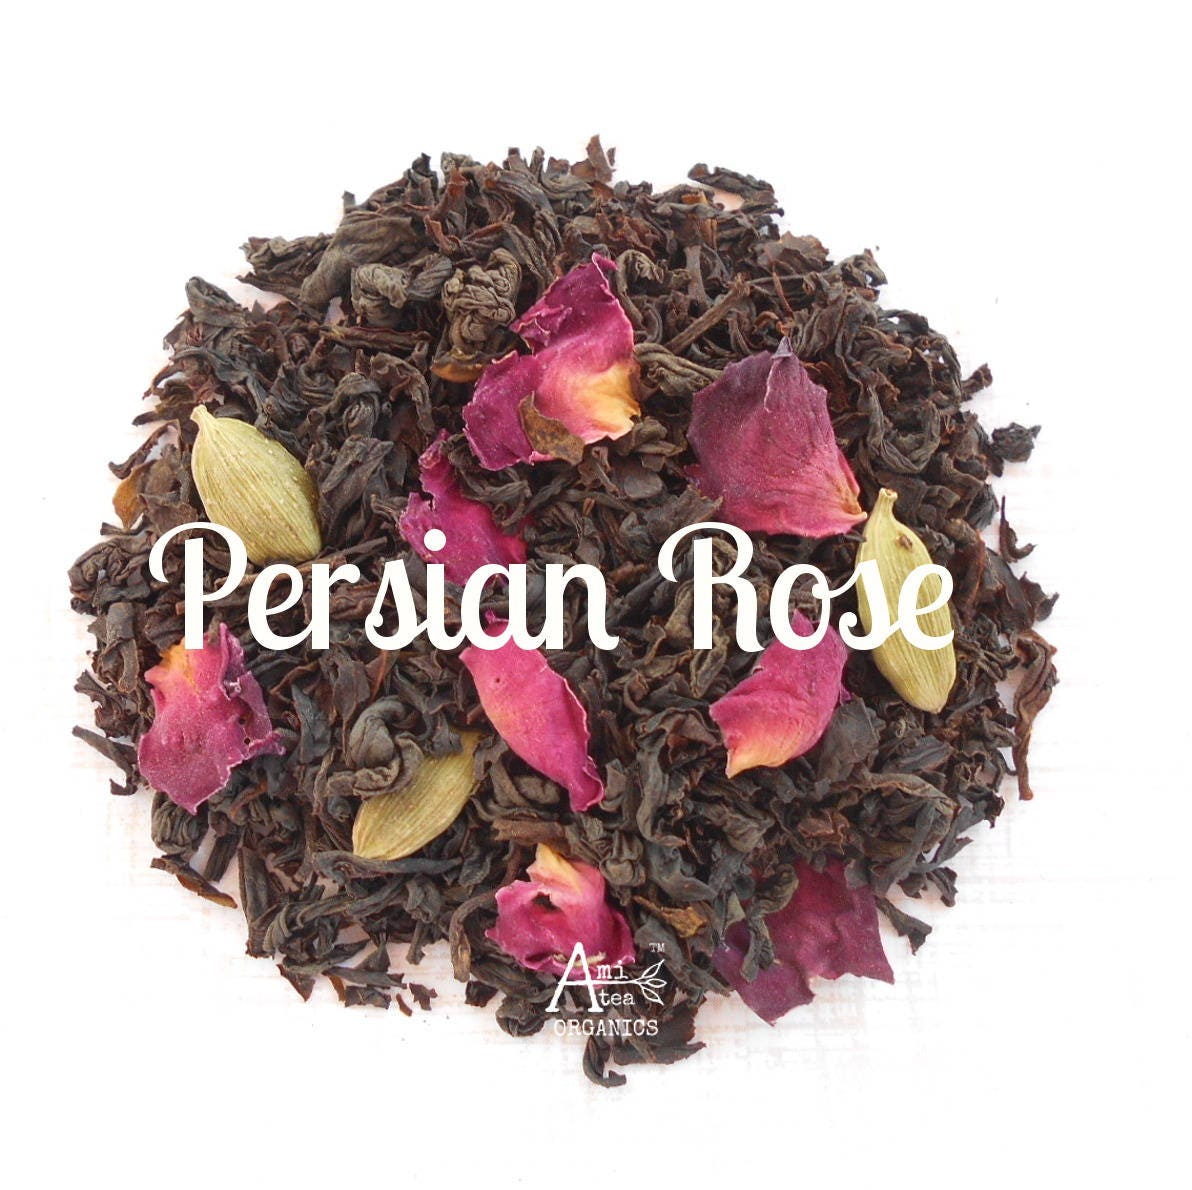 Tea rose cardamom organic persian rose blend whole leaf for A treasury of persian cuisine